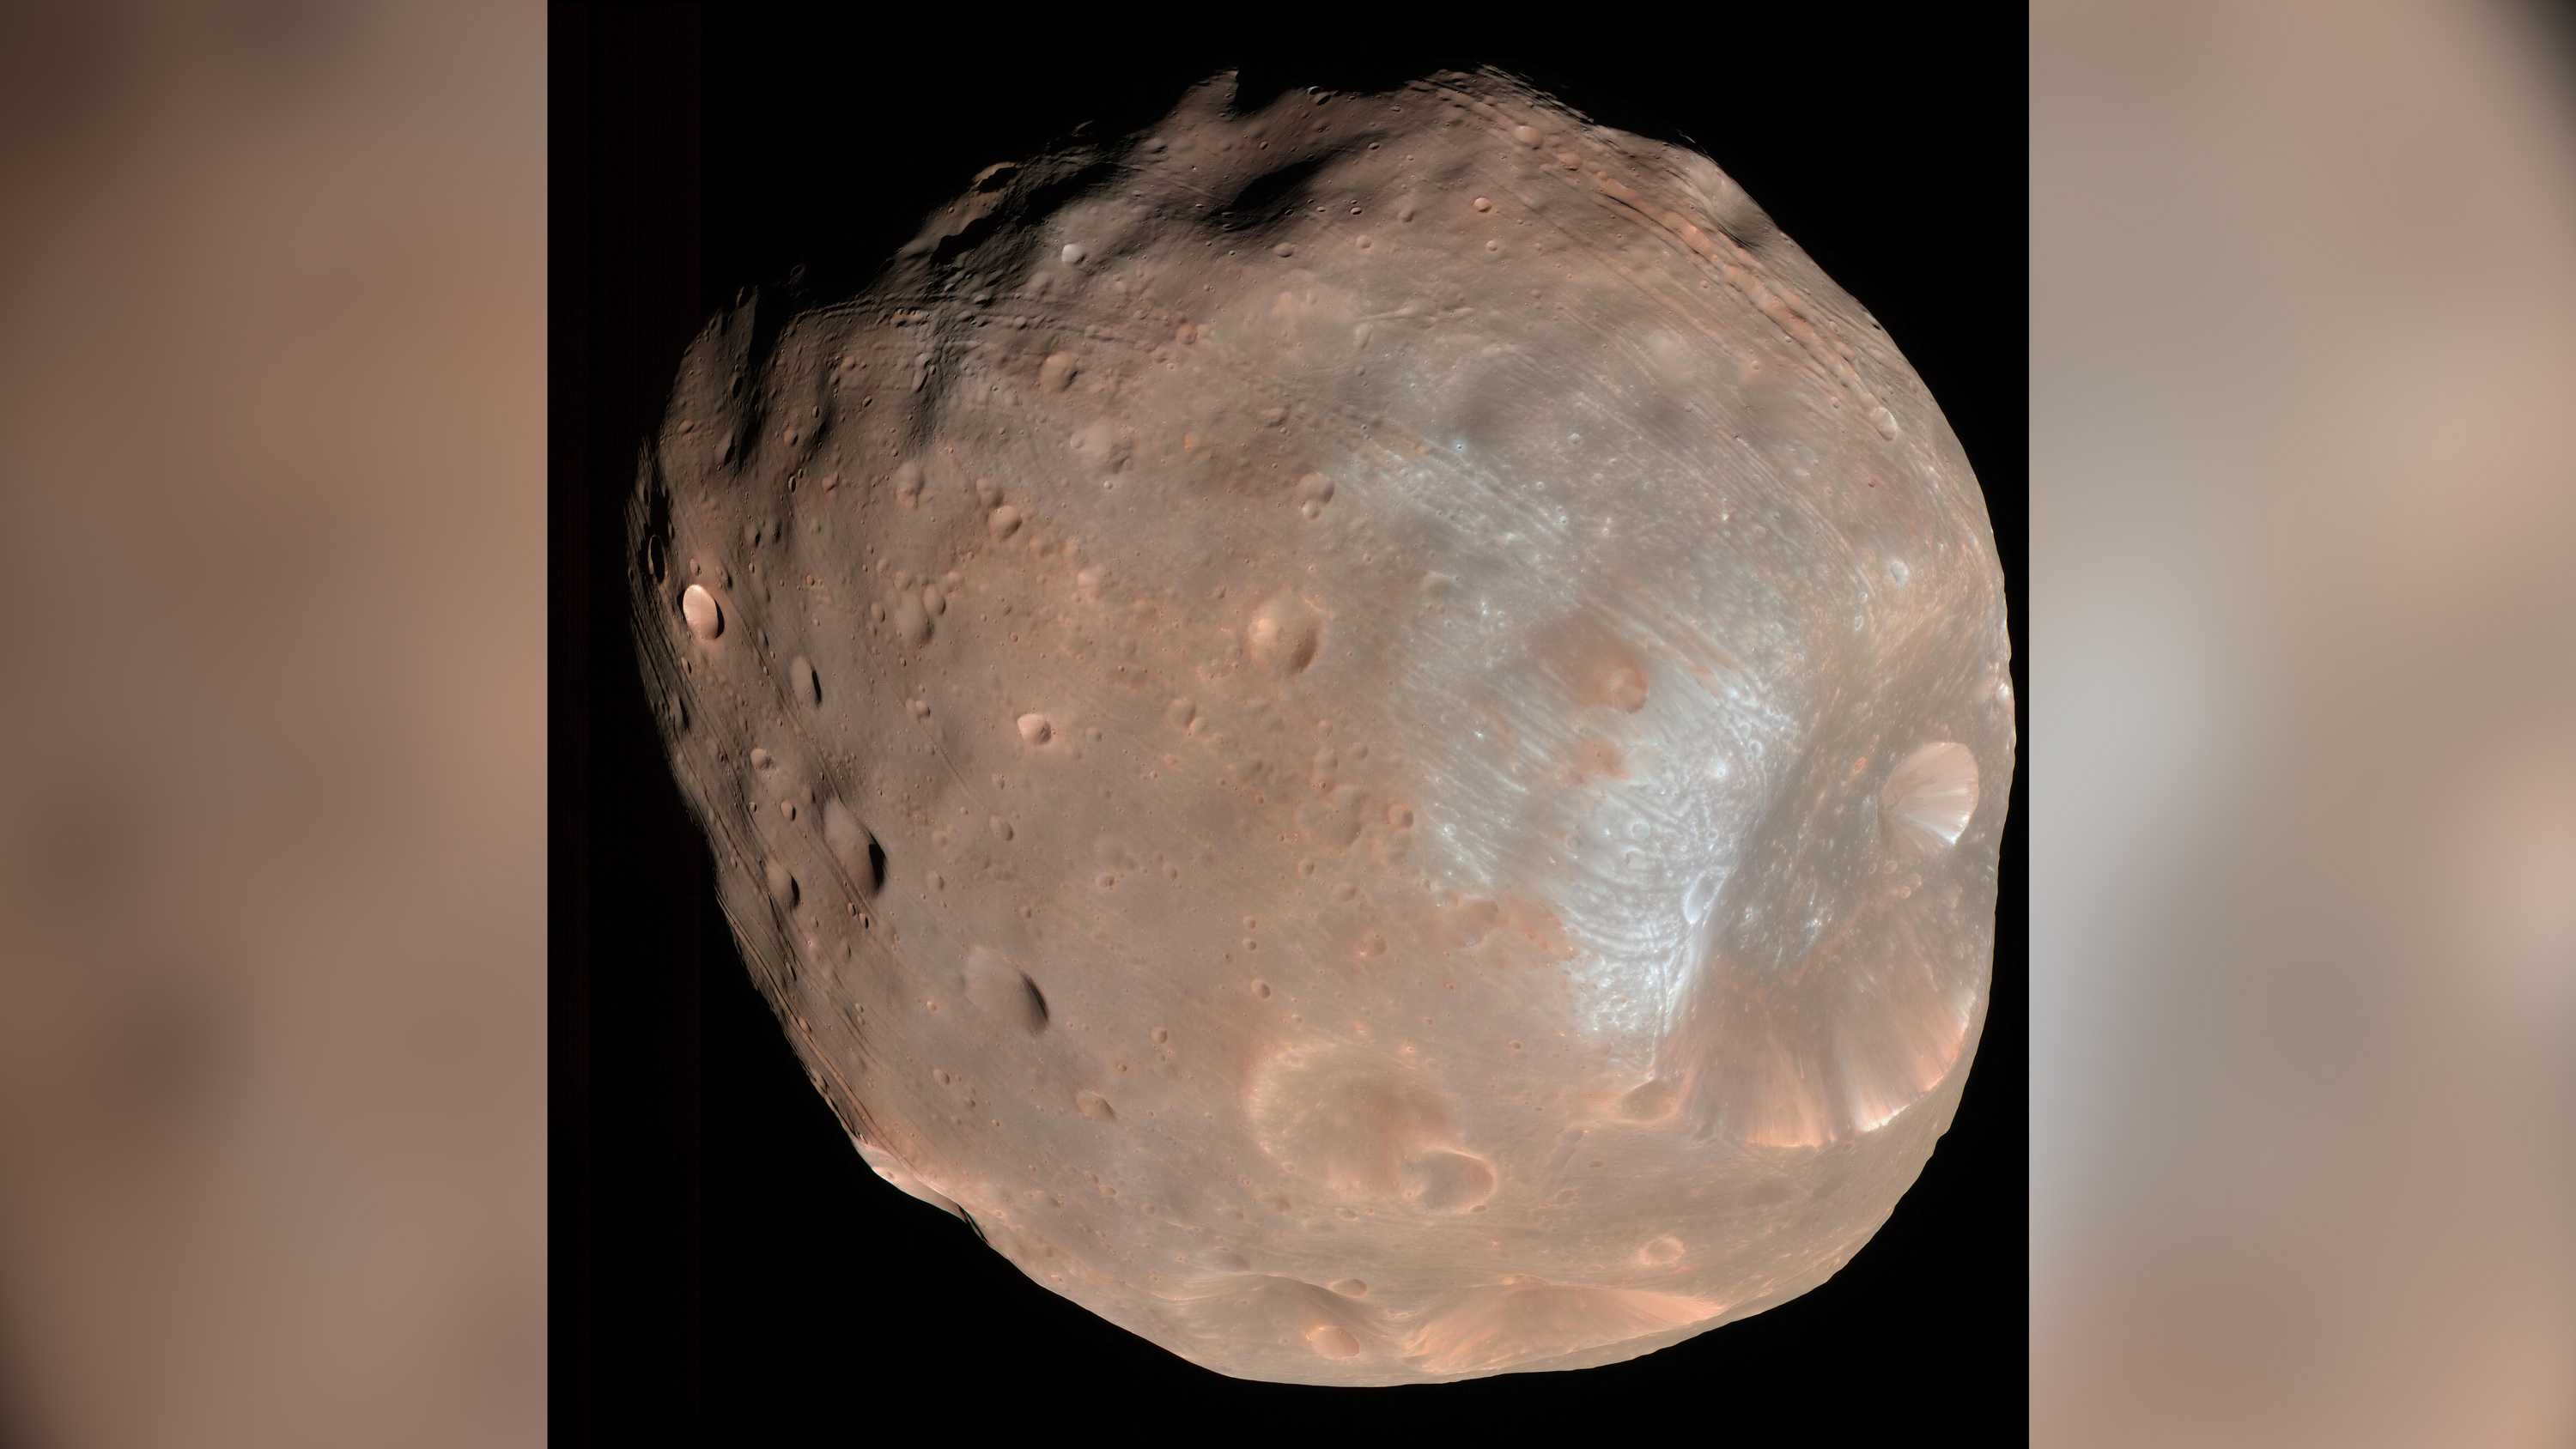 Martian moon Phobos could tell us what Mars was like in the past